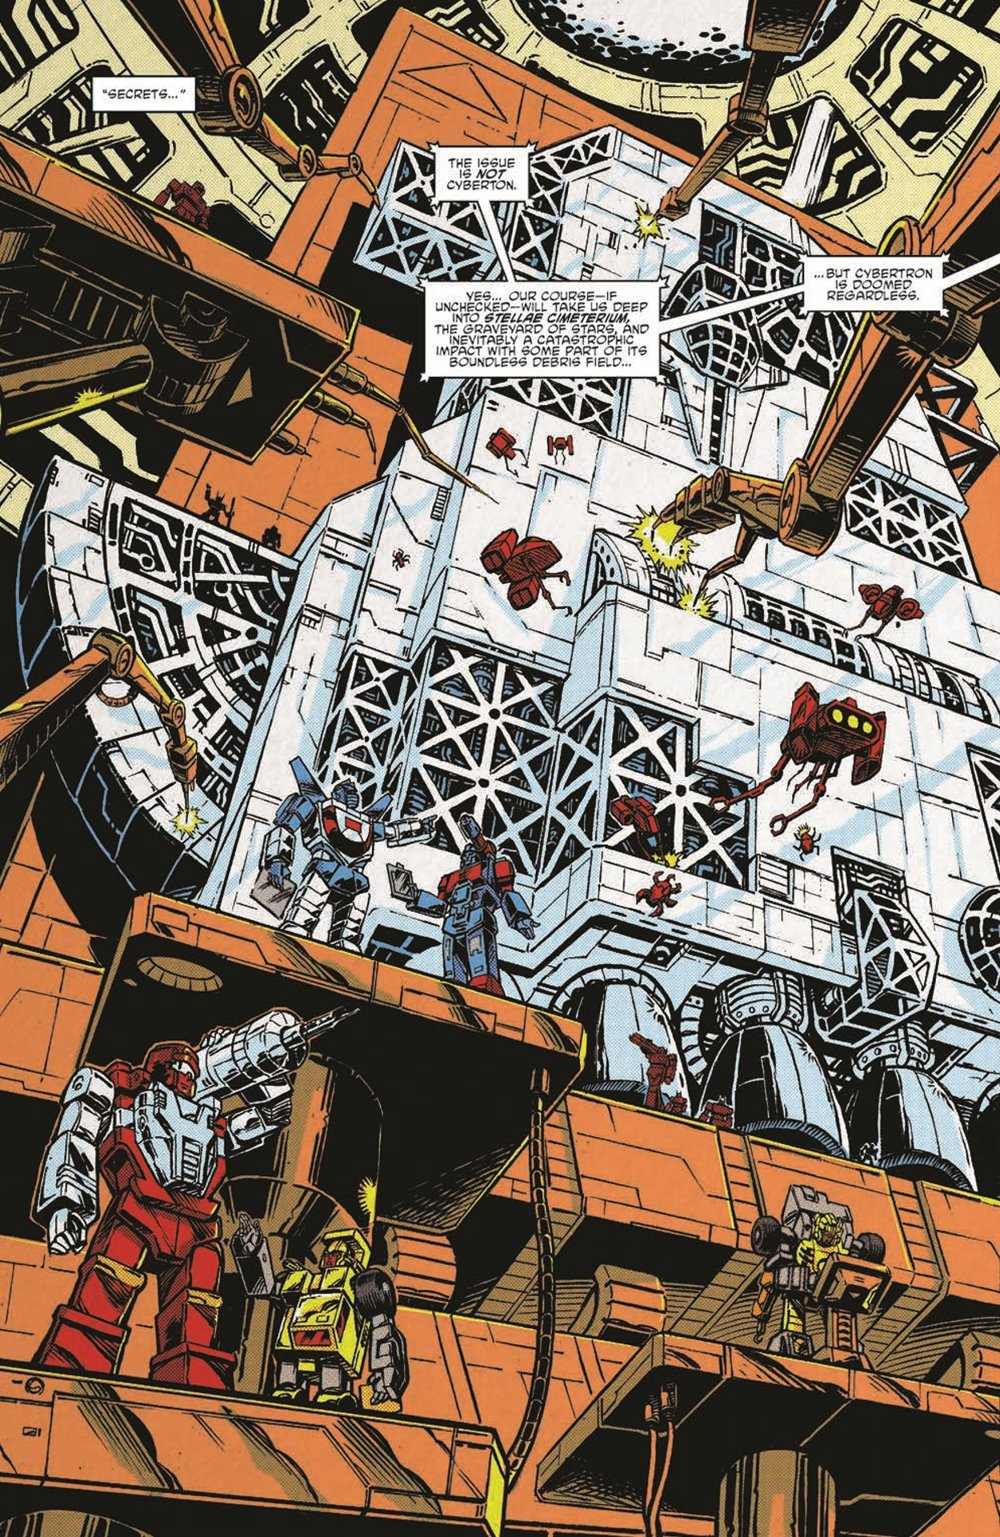 TF84_Secrets_Lies_TPB_pr-5 ComicList Previews: TRANSFORMERS '84 SECRETS AND LIES TP